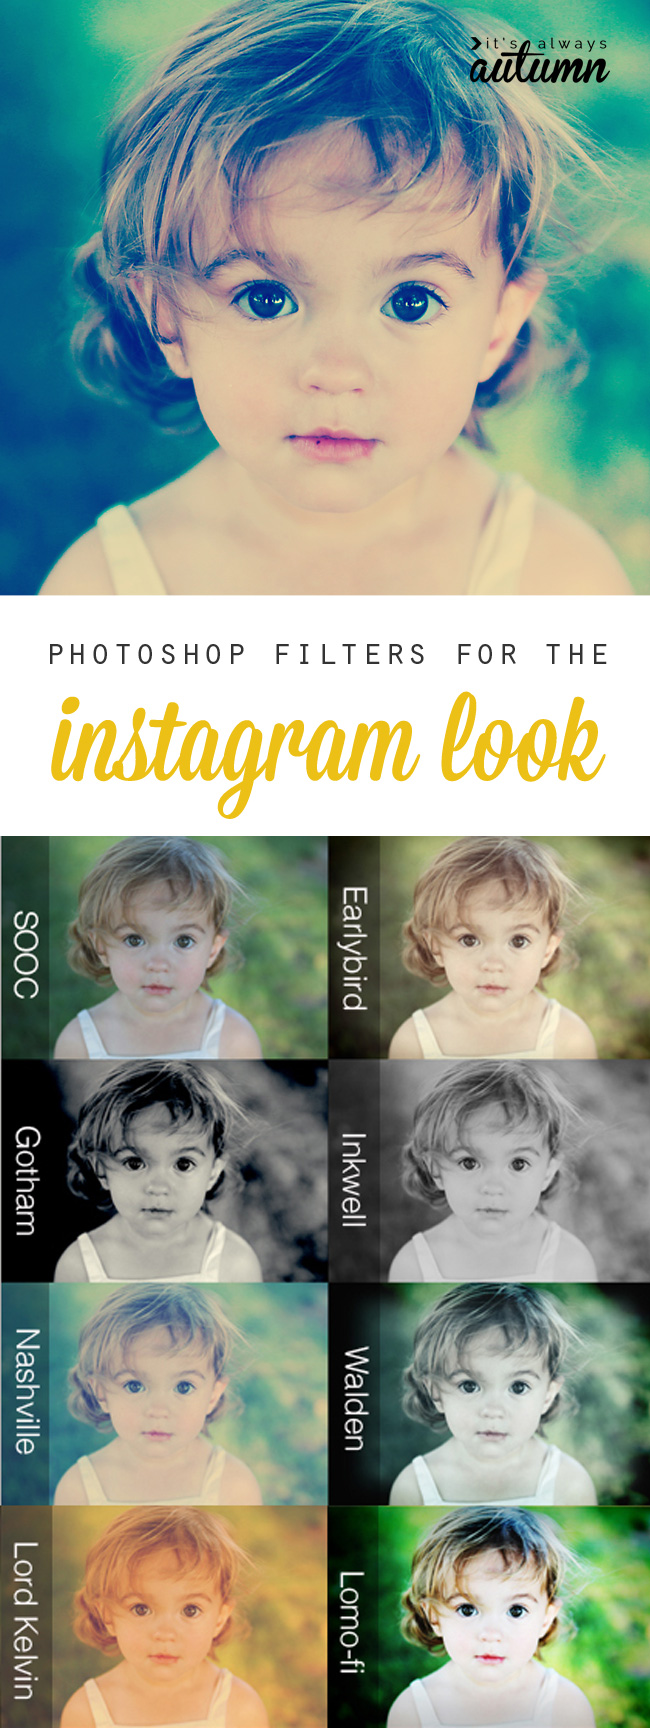 Easy to use Photoshop filters give you the instagram look, without having to use instagram. Great for old photos or photos you didn't take with your phone!